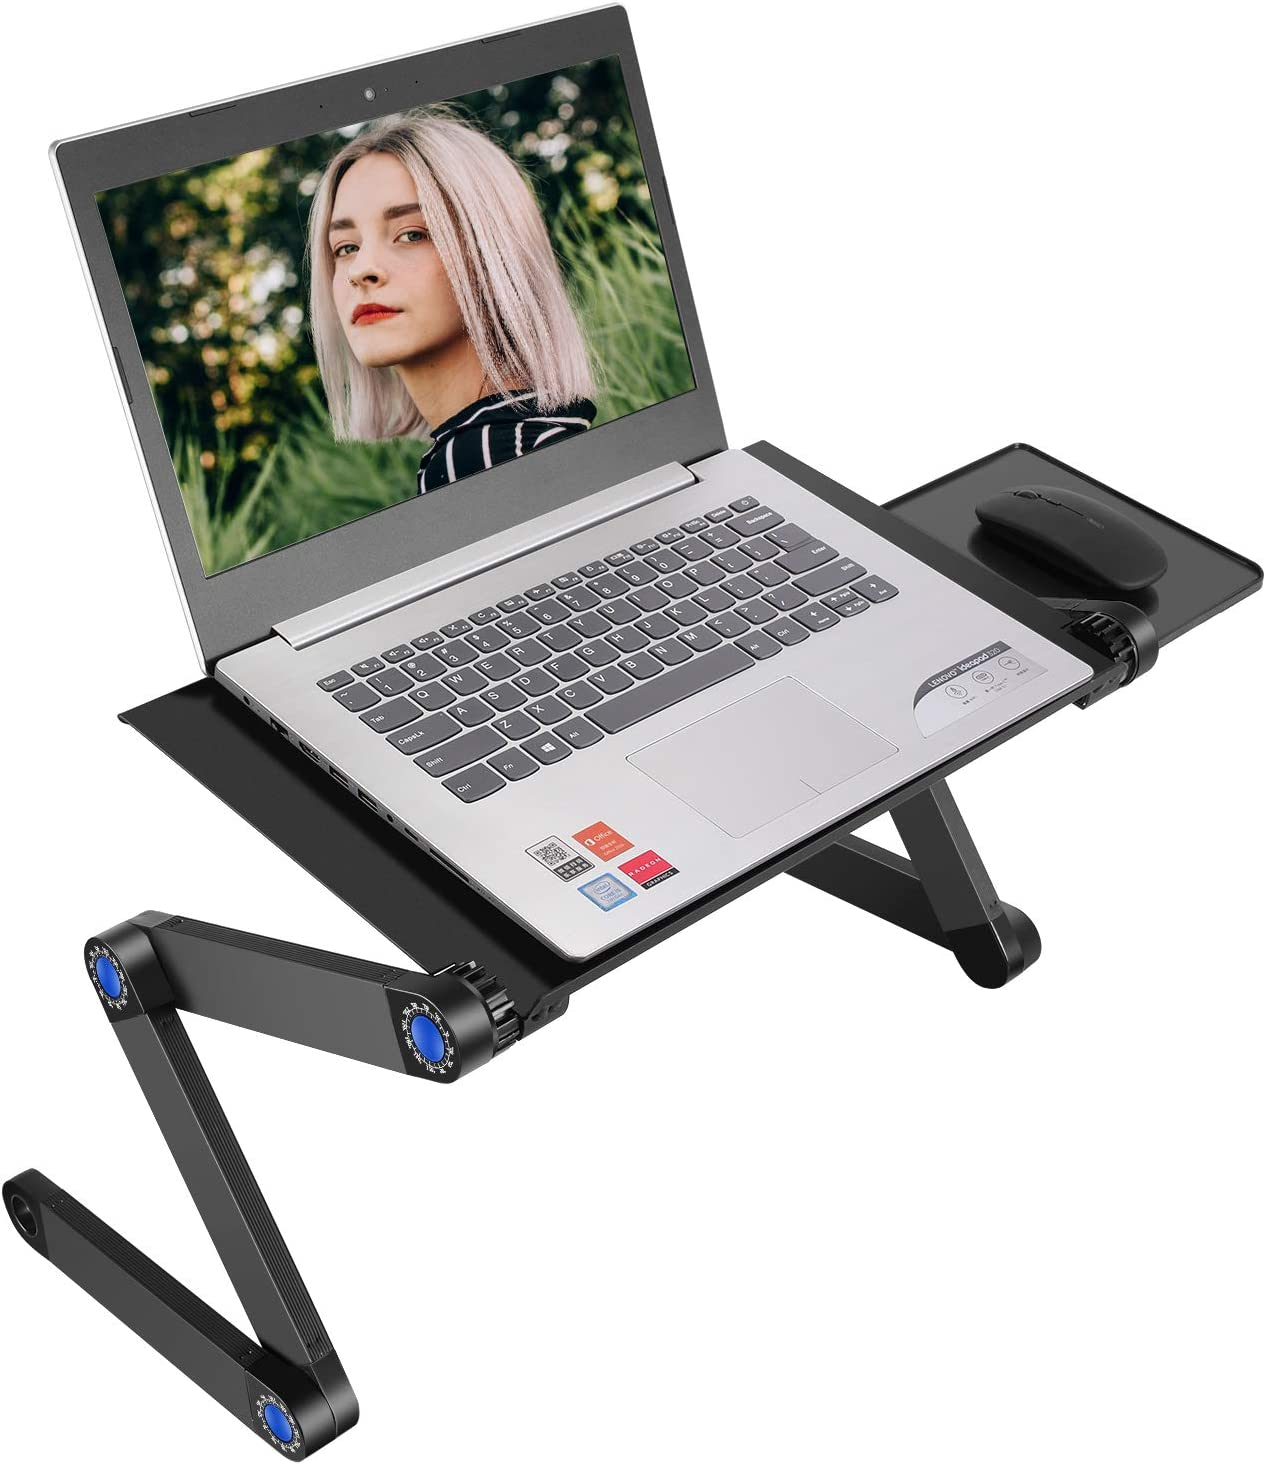 Neewer Portable Adjustable Laptop Stand/Desk/Table Vented with CPU Fans and Mouse Pad Side for Notebook MacBook Lightweight Aluminum Ergonomic Bed/Sofa/Couch Lap Tray, Standing/Sitting Use-Black